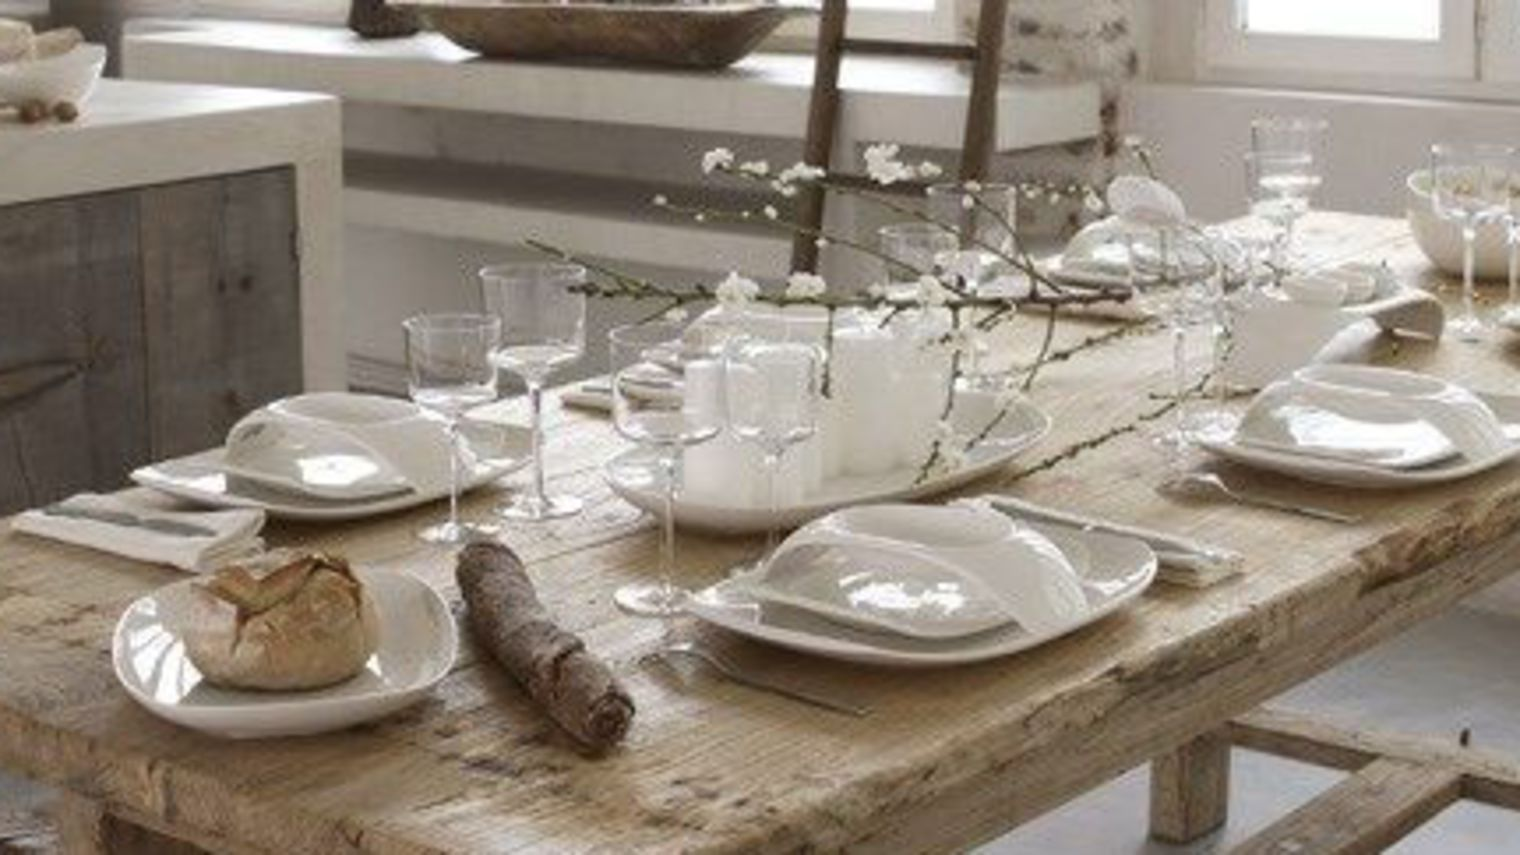 Comment faire une belle table - Comment faire des decoration de noel ...